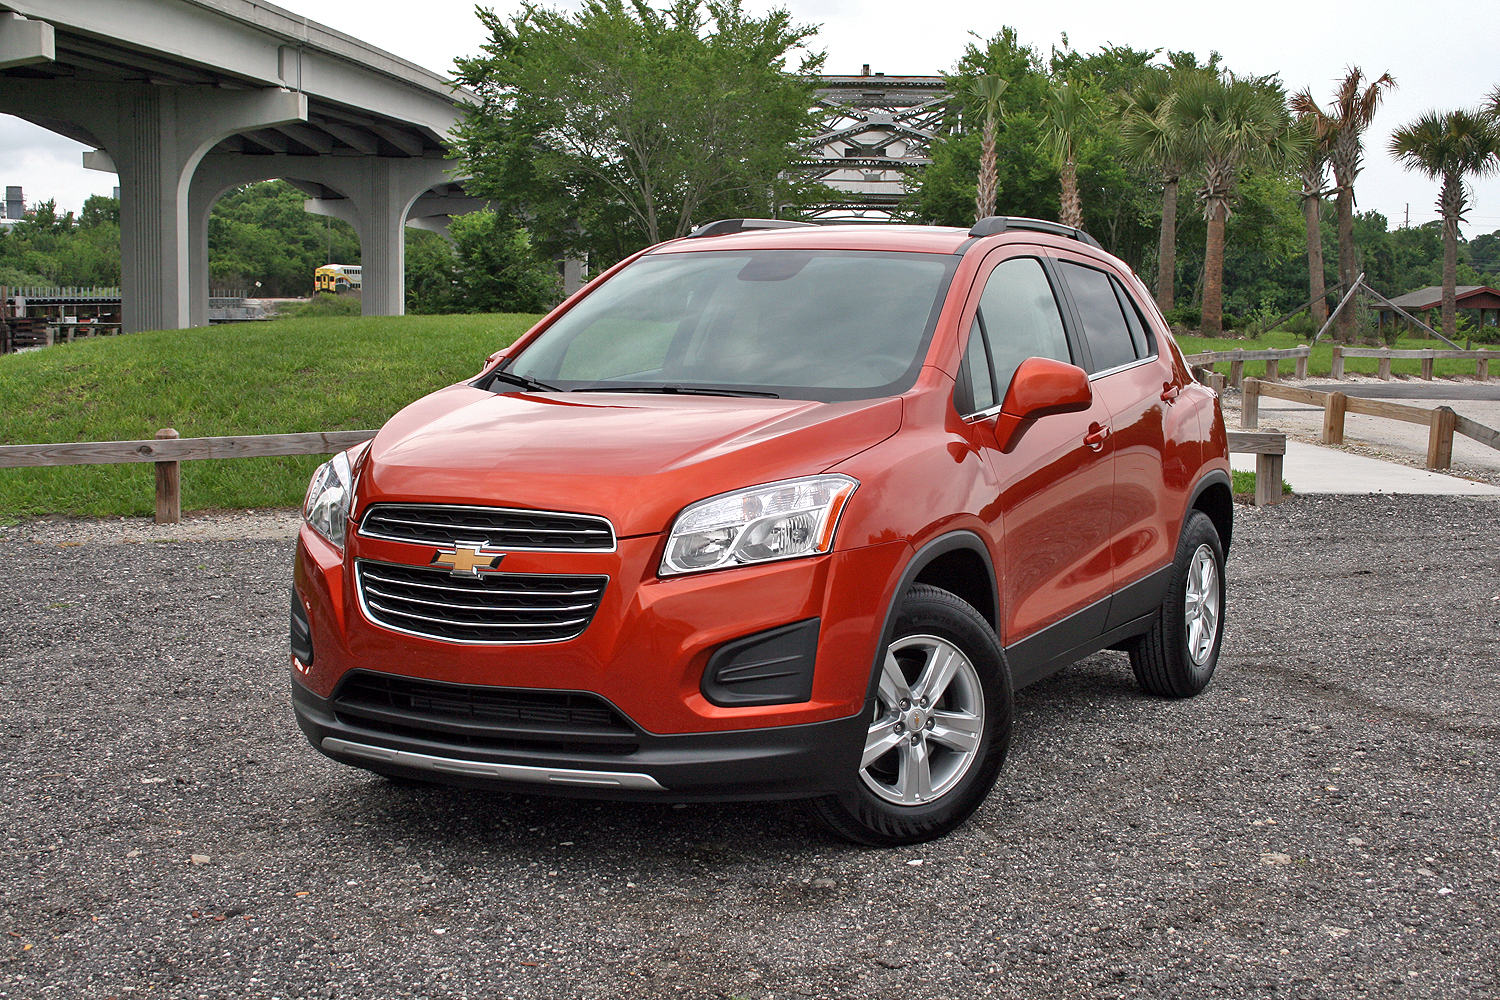 review car fwd test reviews tested driver photo chevrolet and awd trax original s